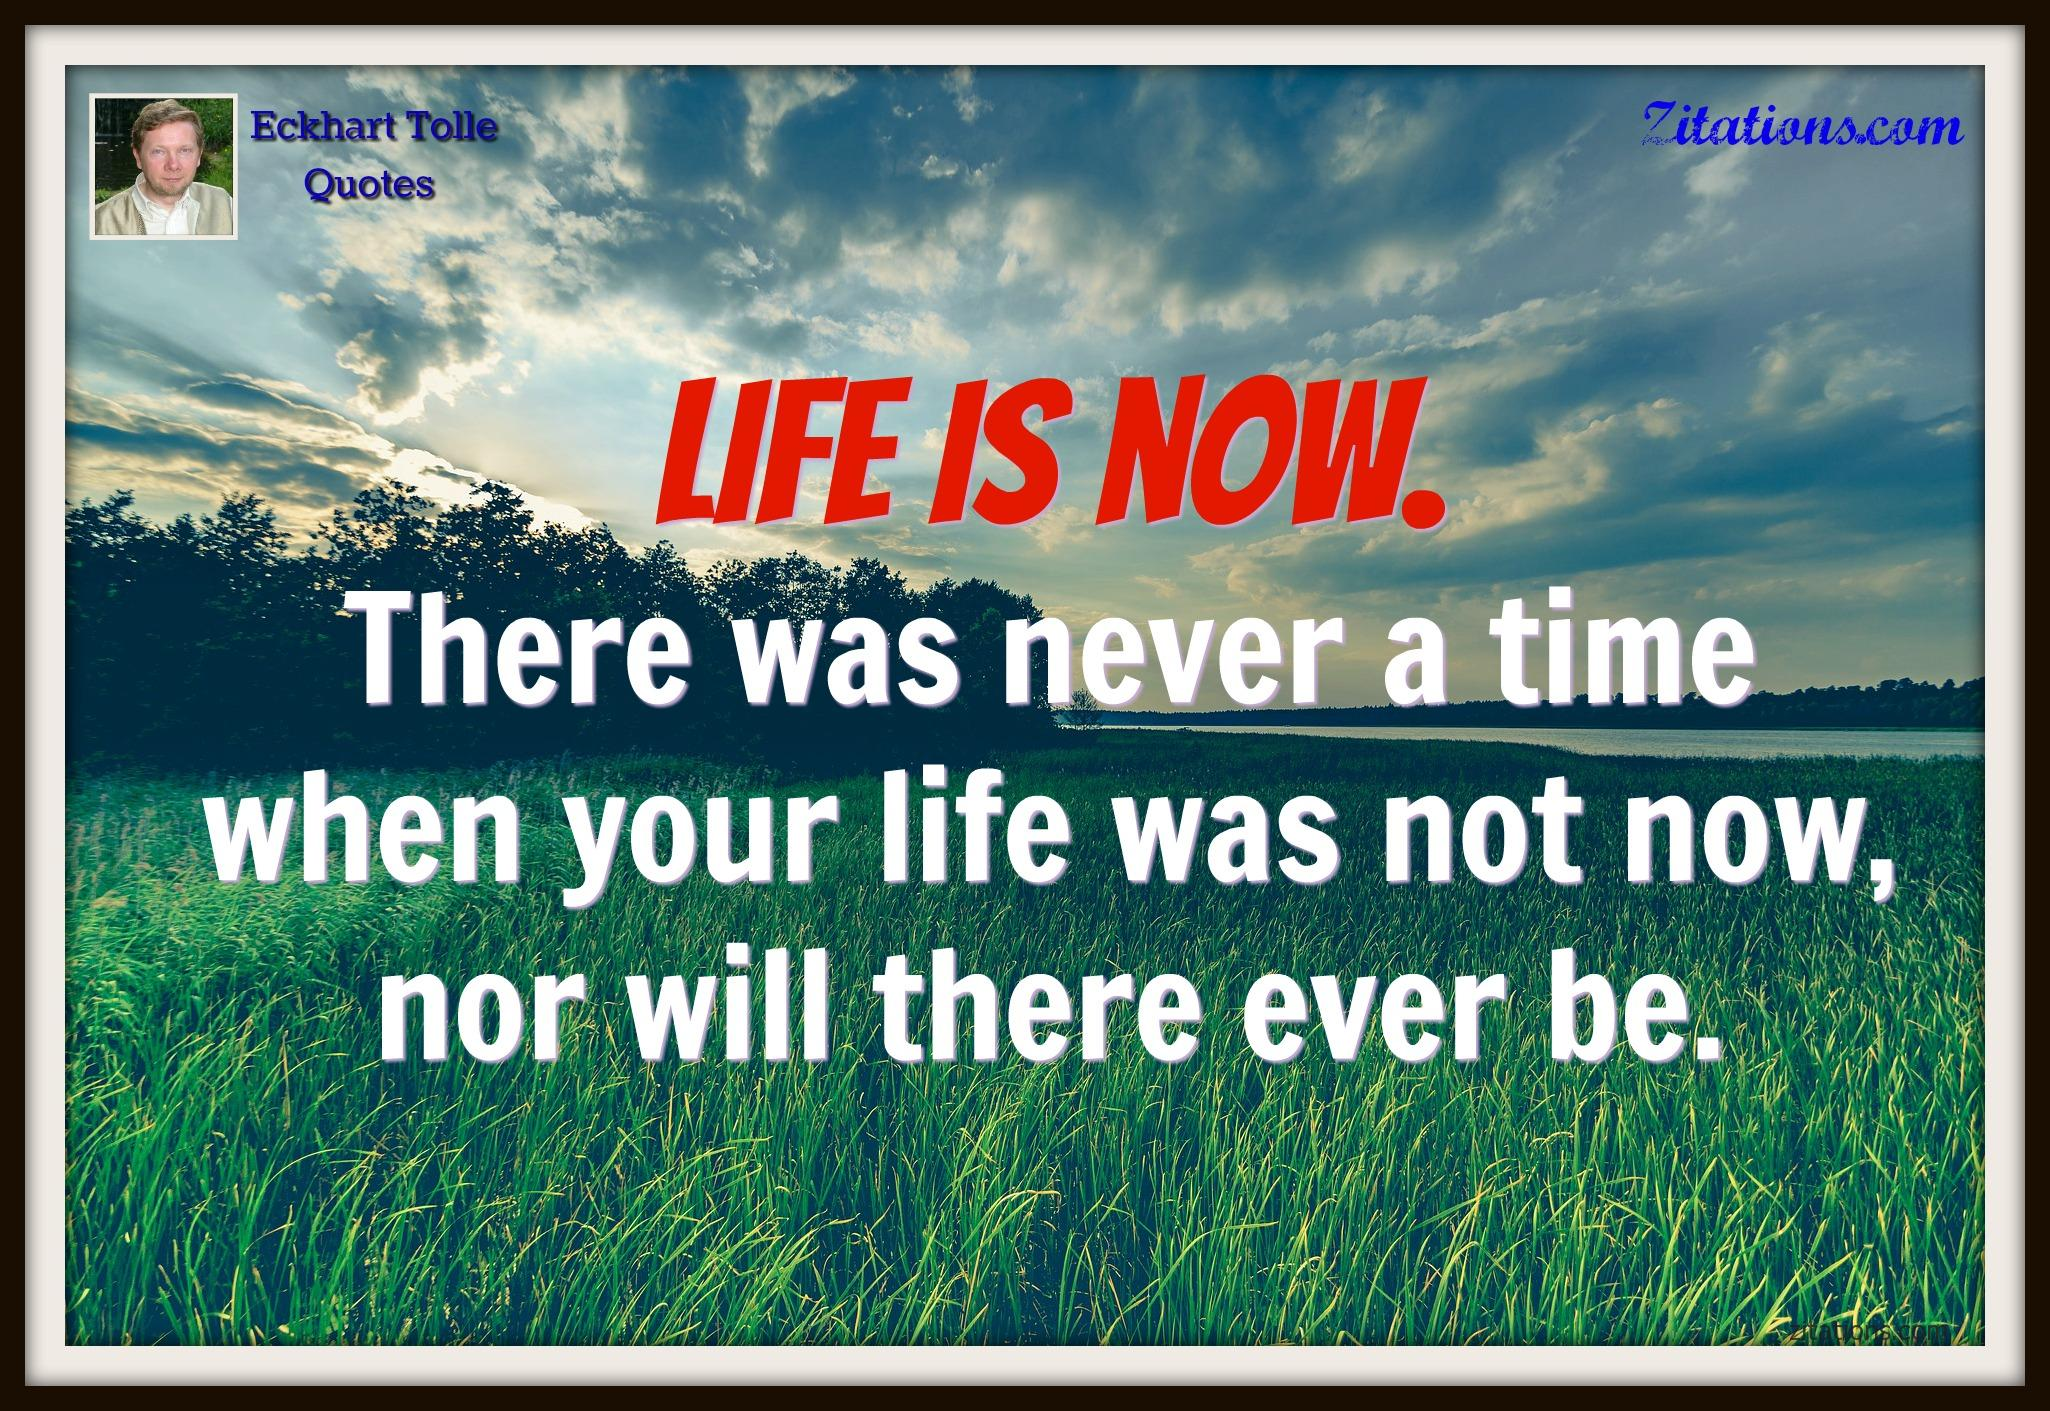 live life in the moment quotes - Eckhart Tolle Quotes